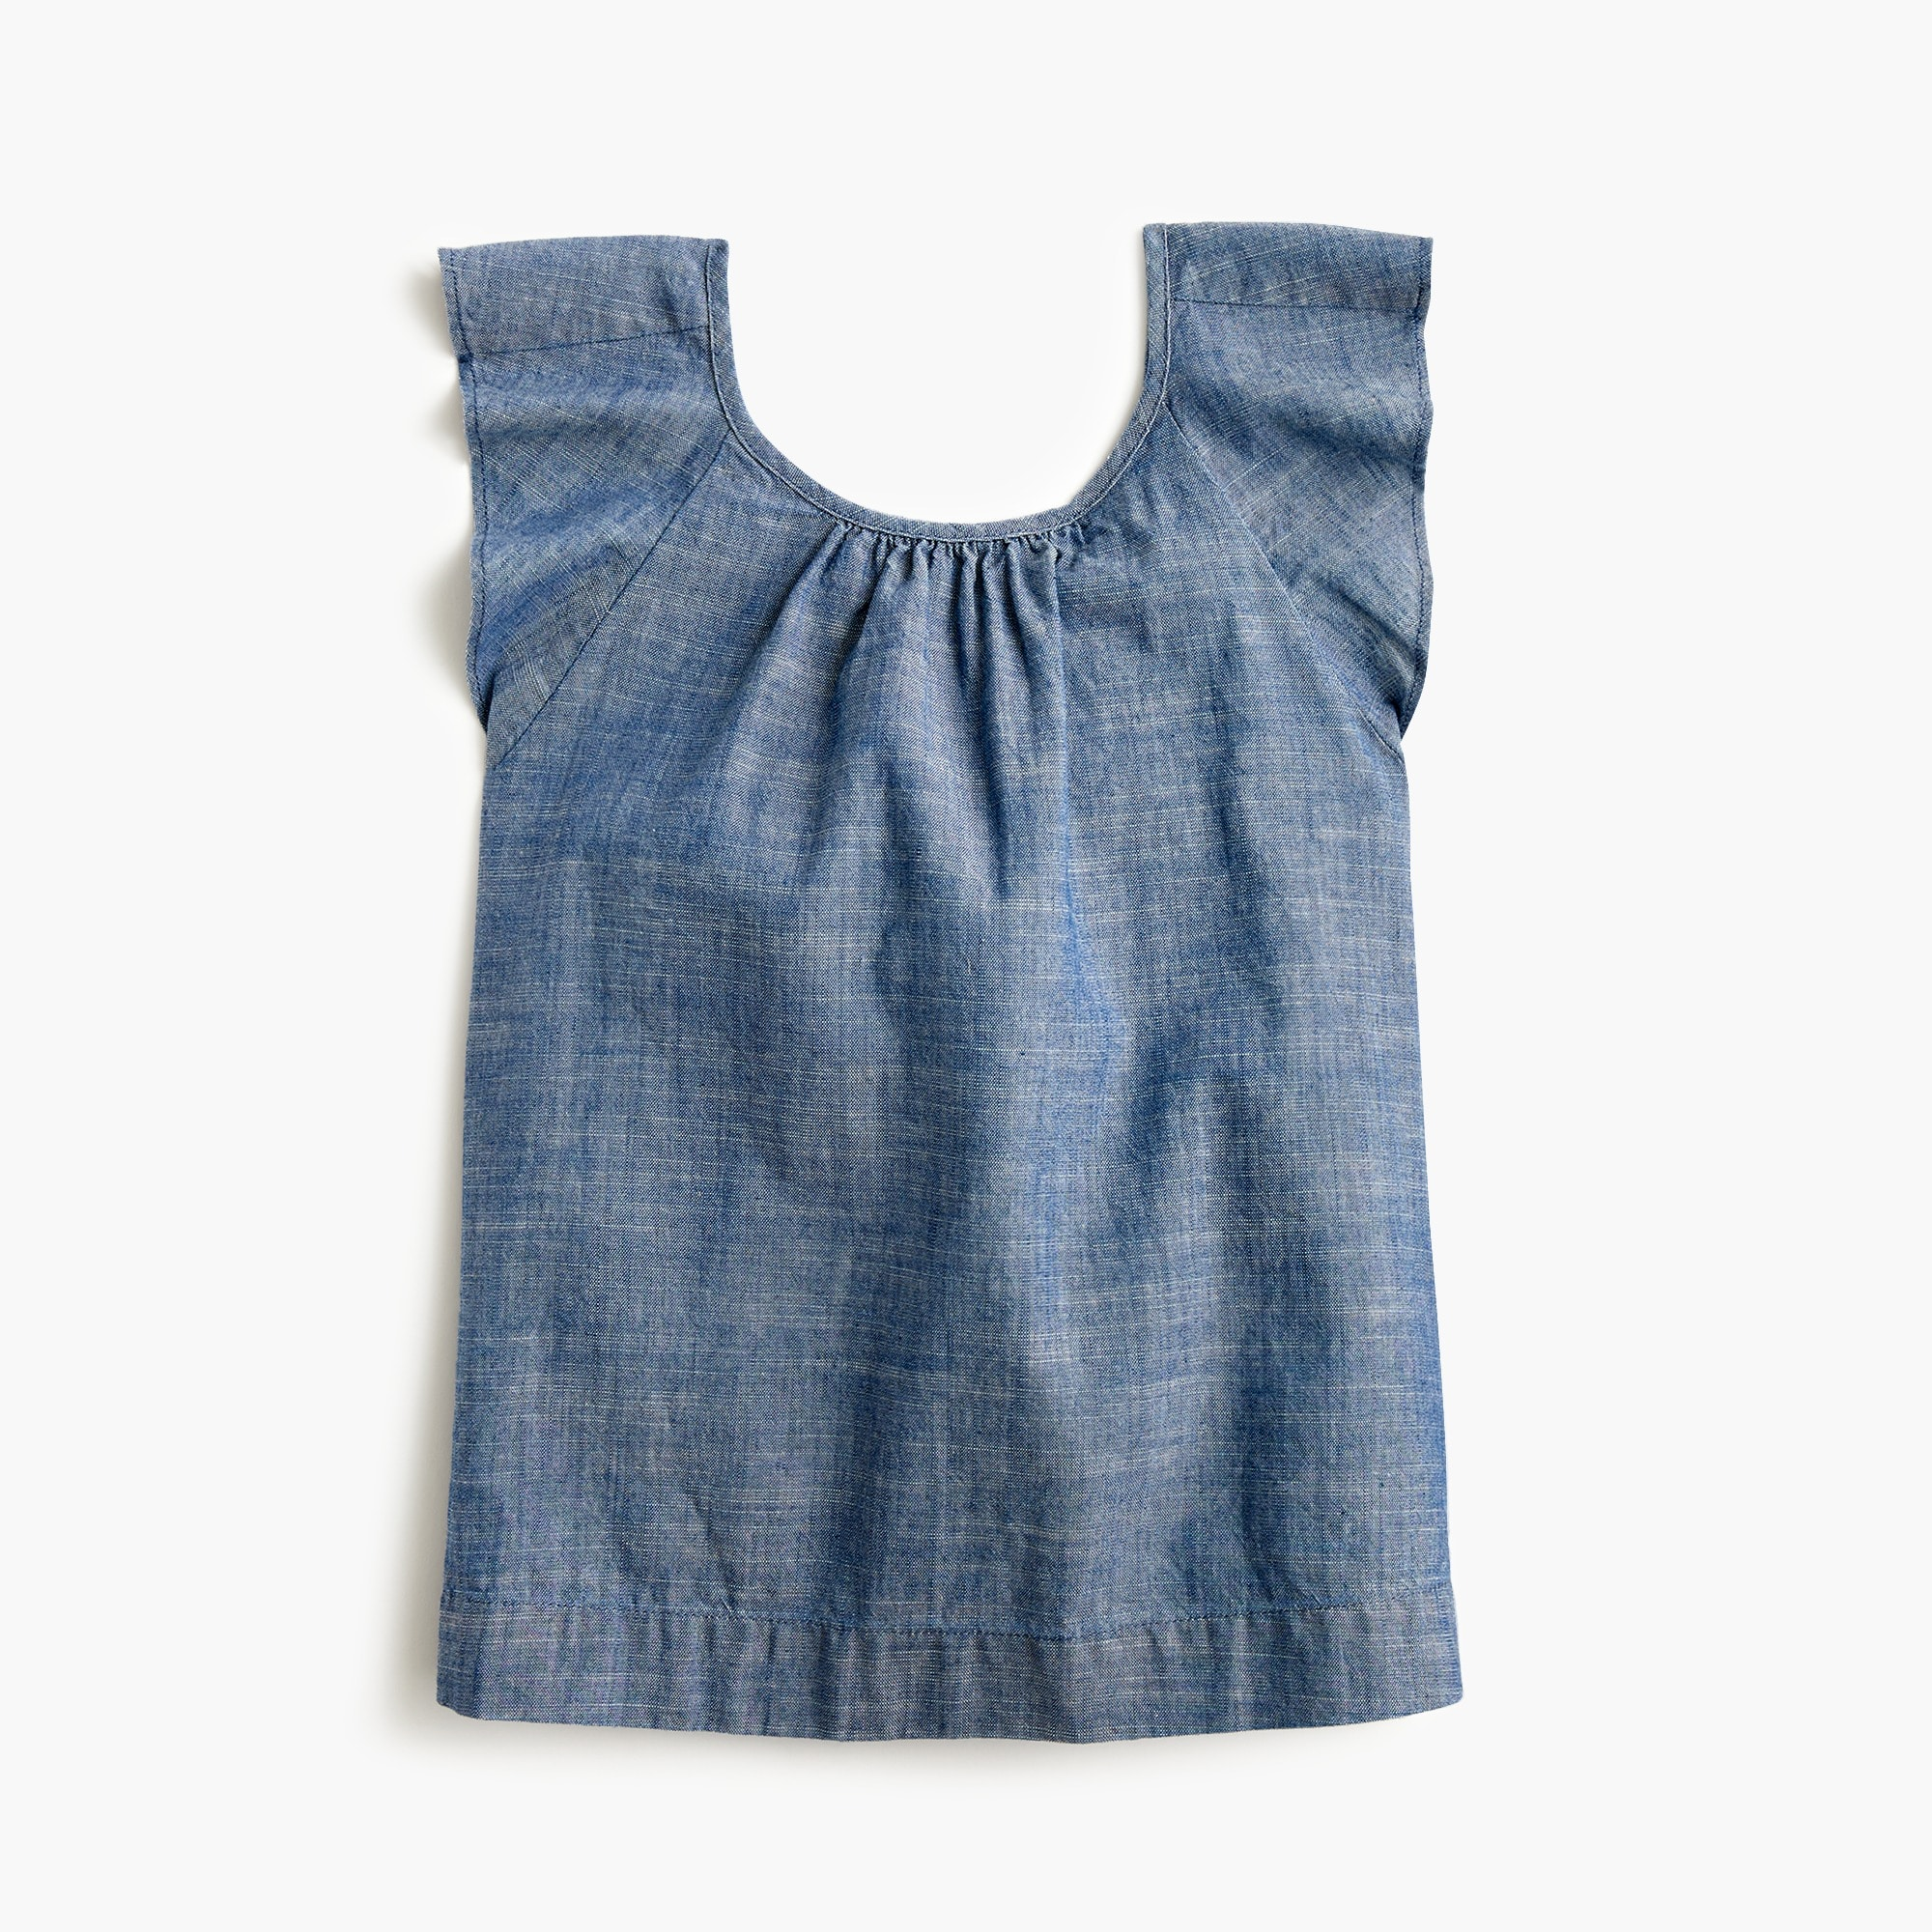 girls Girls' flutter-sleeve top in chambray